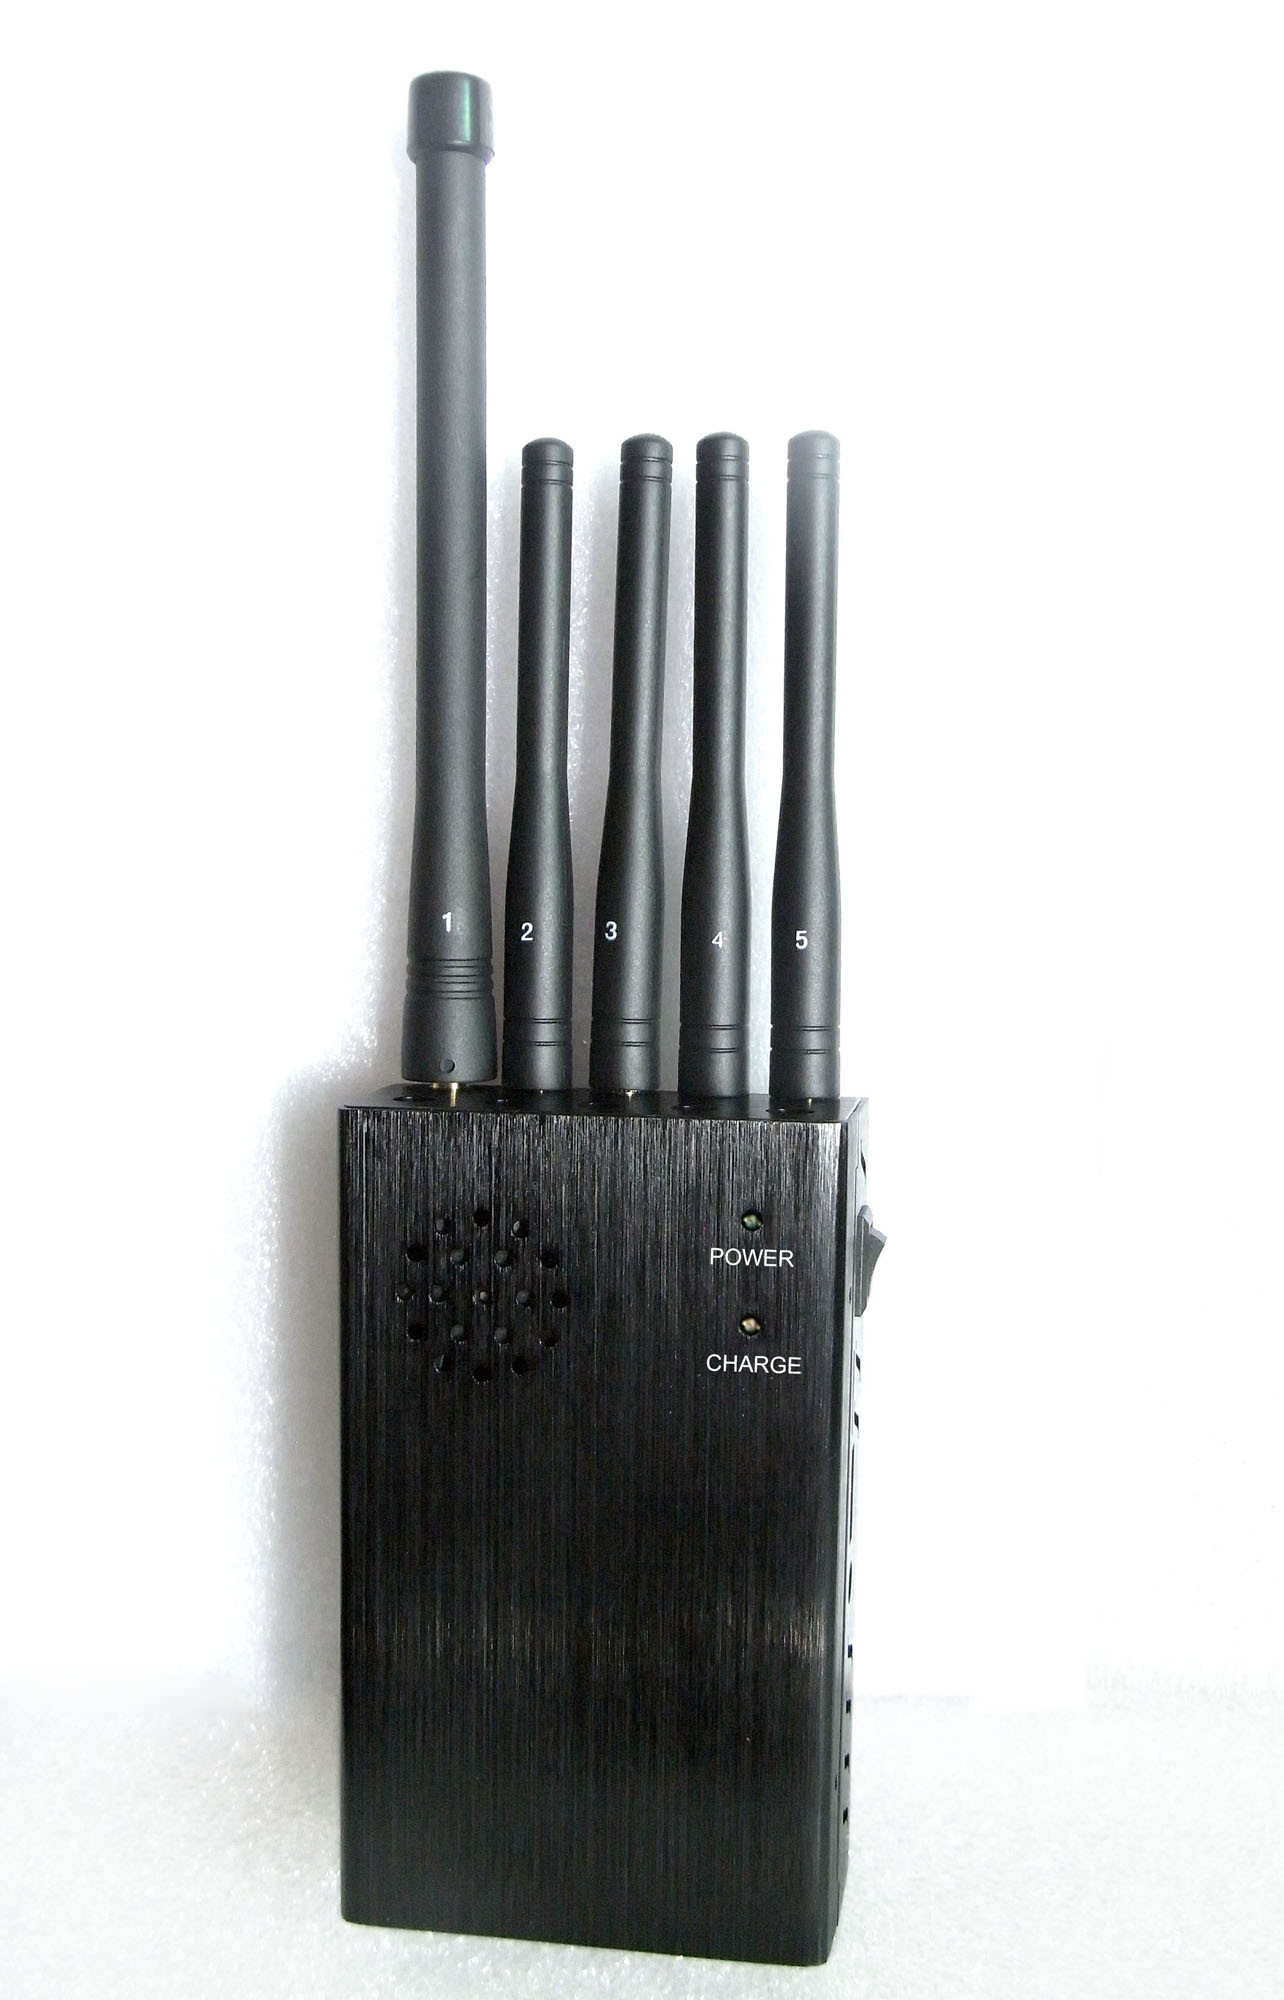 cell phone jammer detection